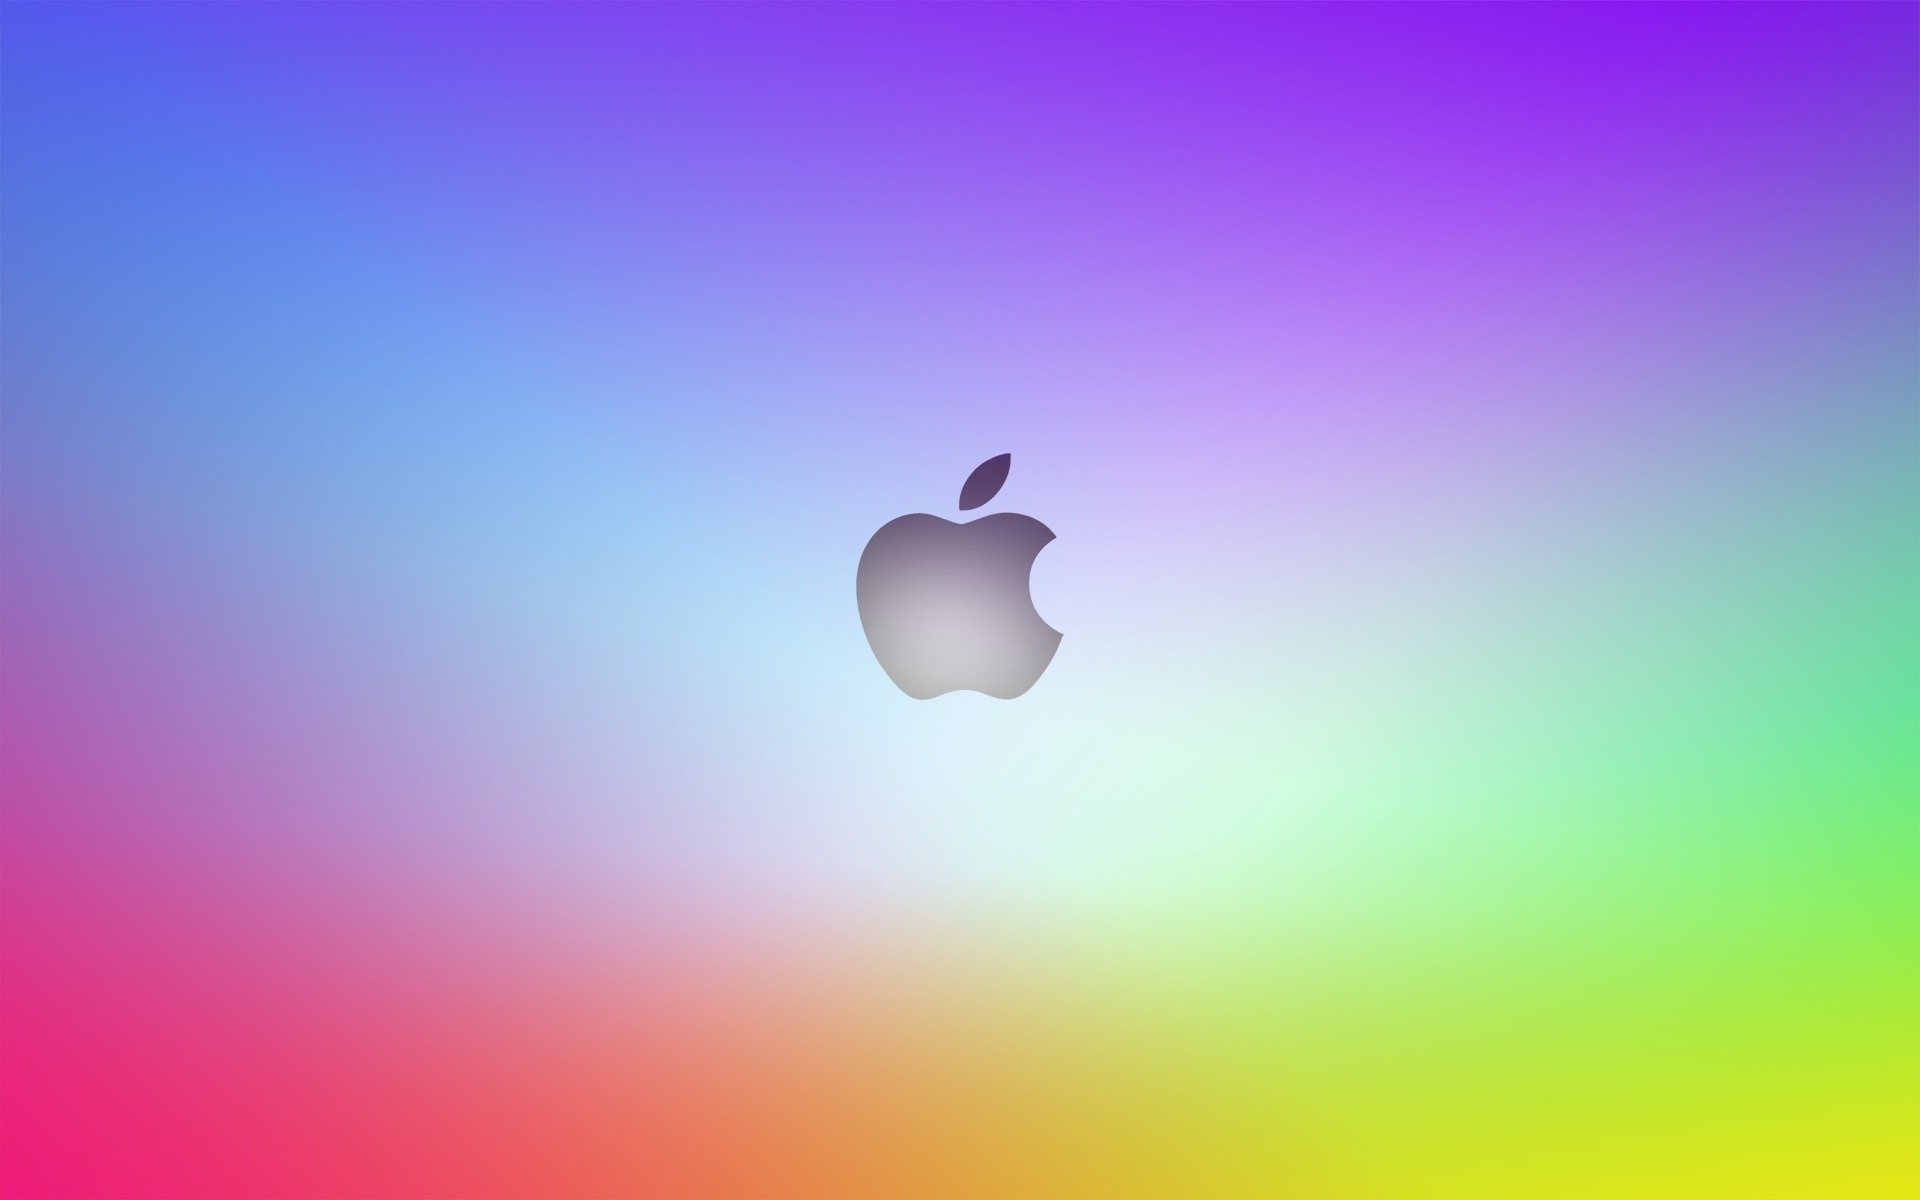 apple background wallpaper